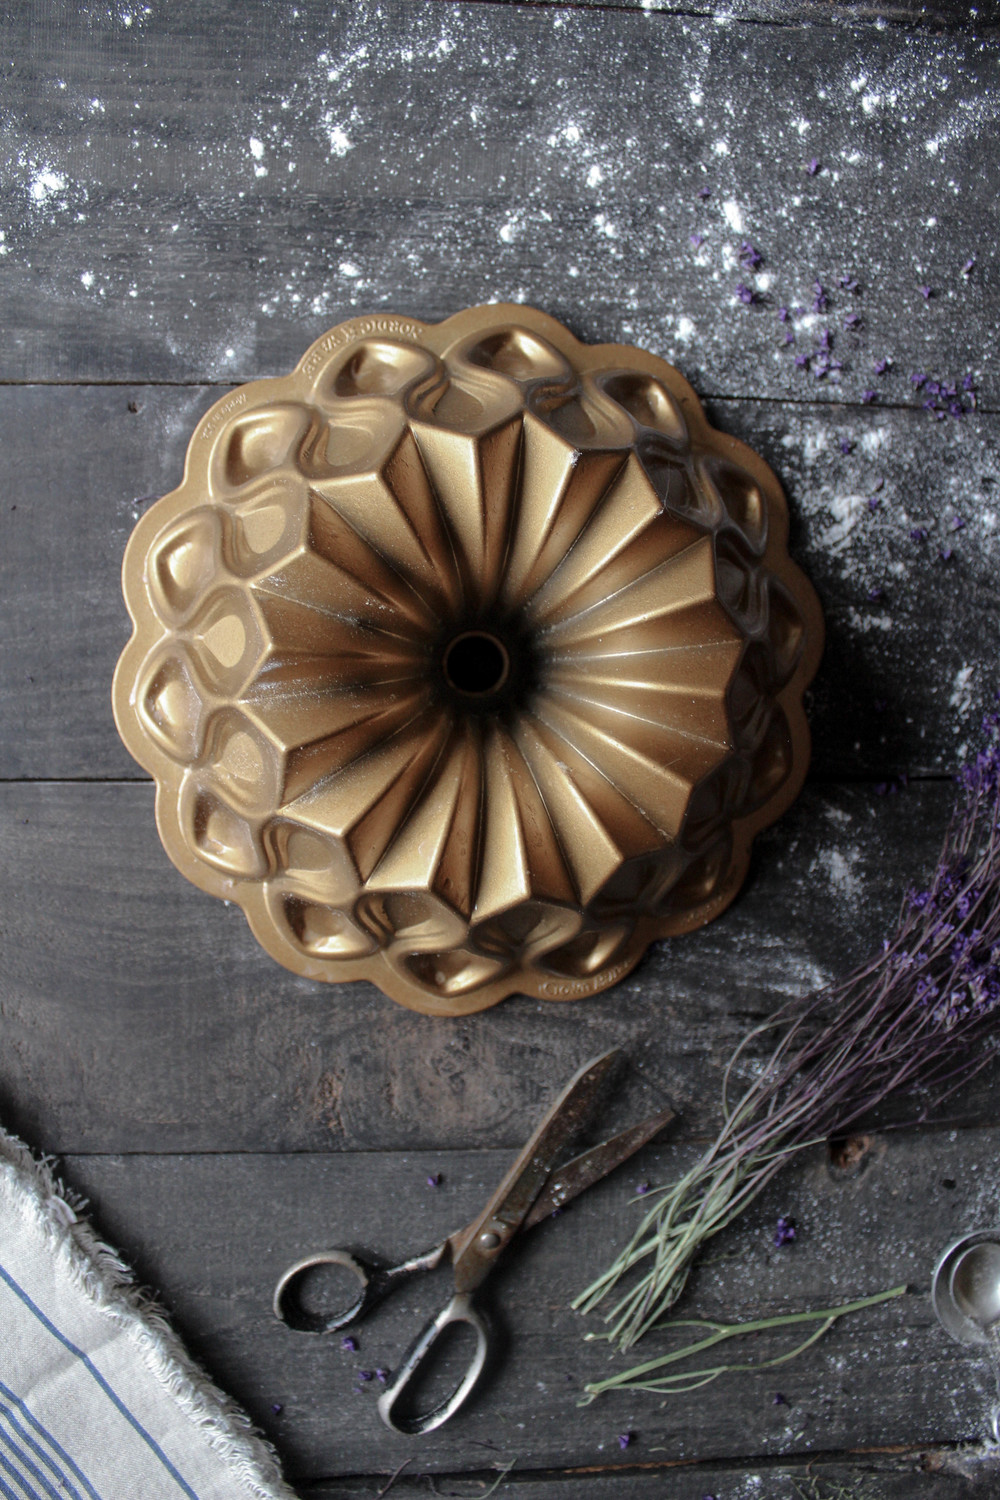 Nordic Ware's 70th Anniversary Crown Bundt